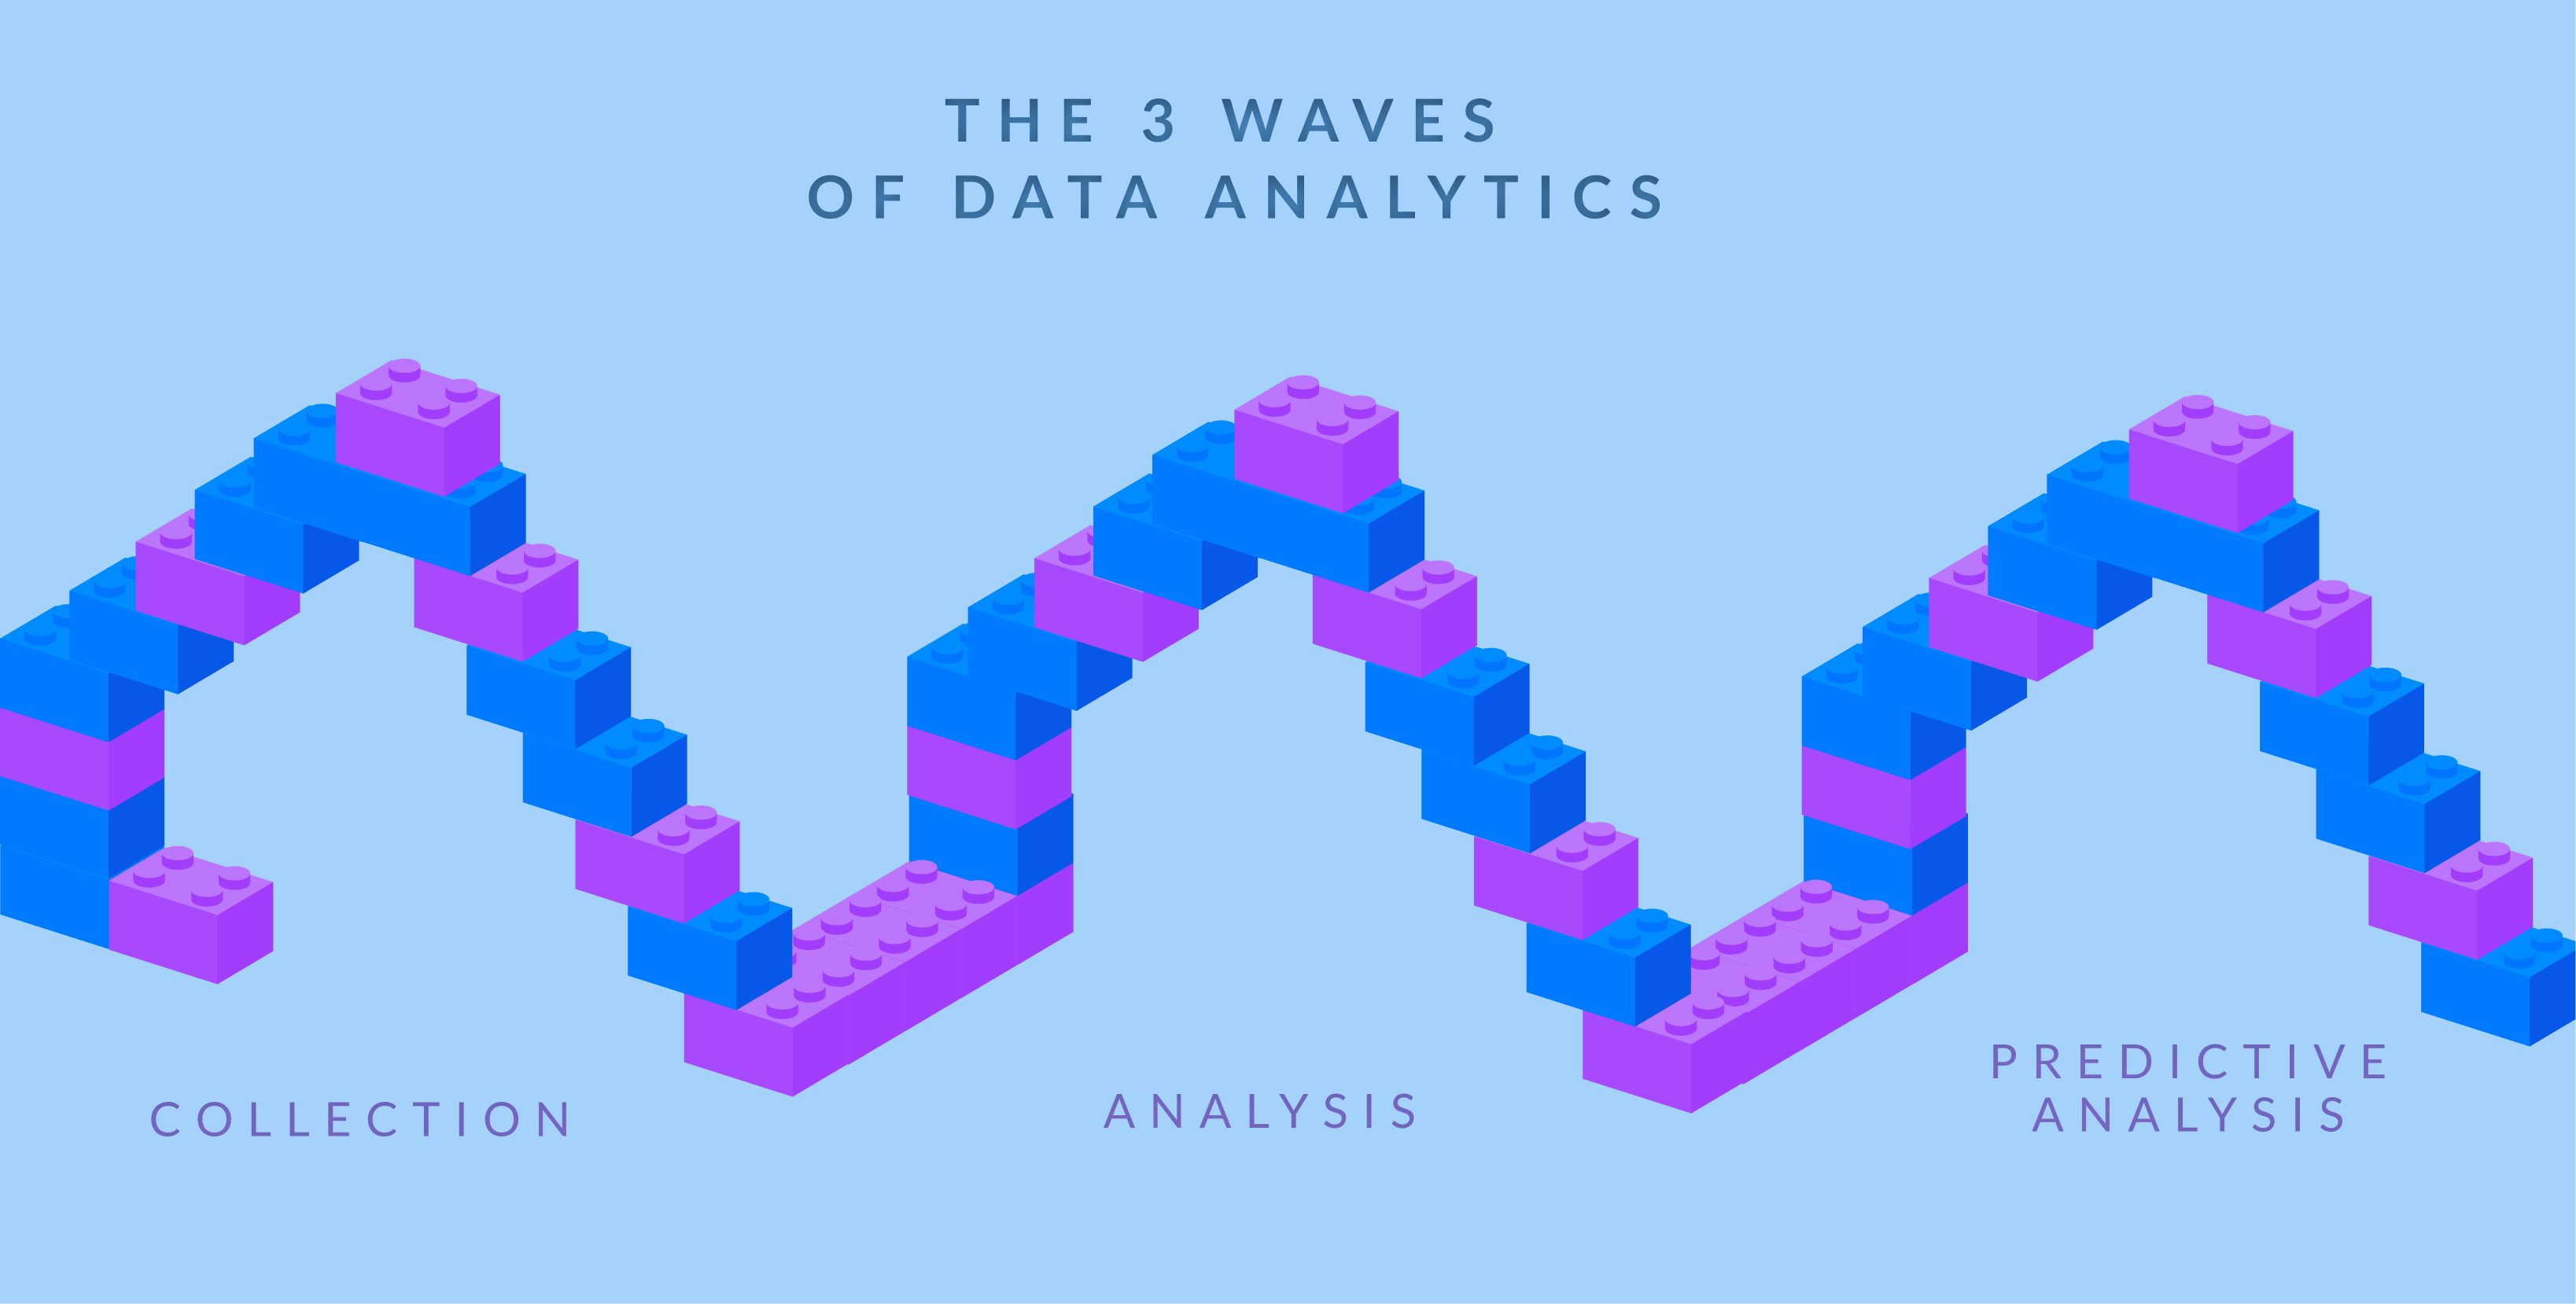 the three waves of data analytics: collection, analysis and predictive analytics